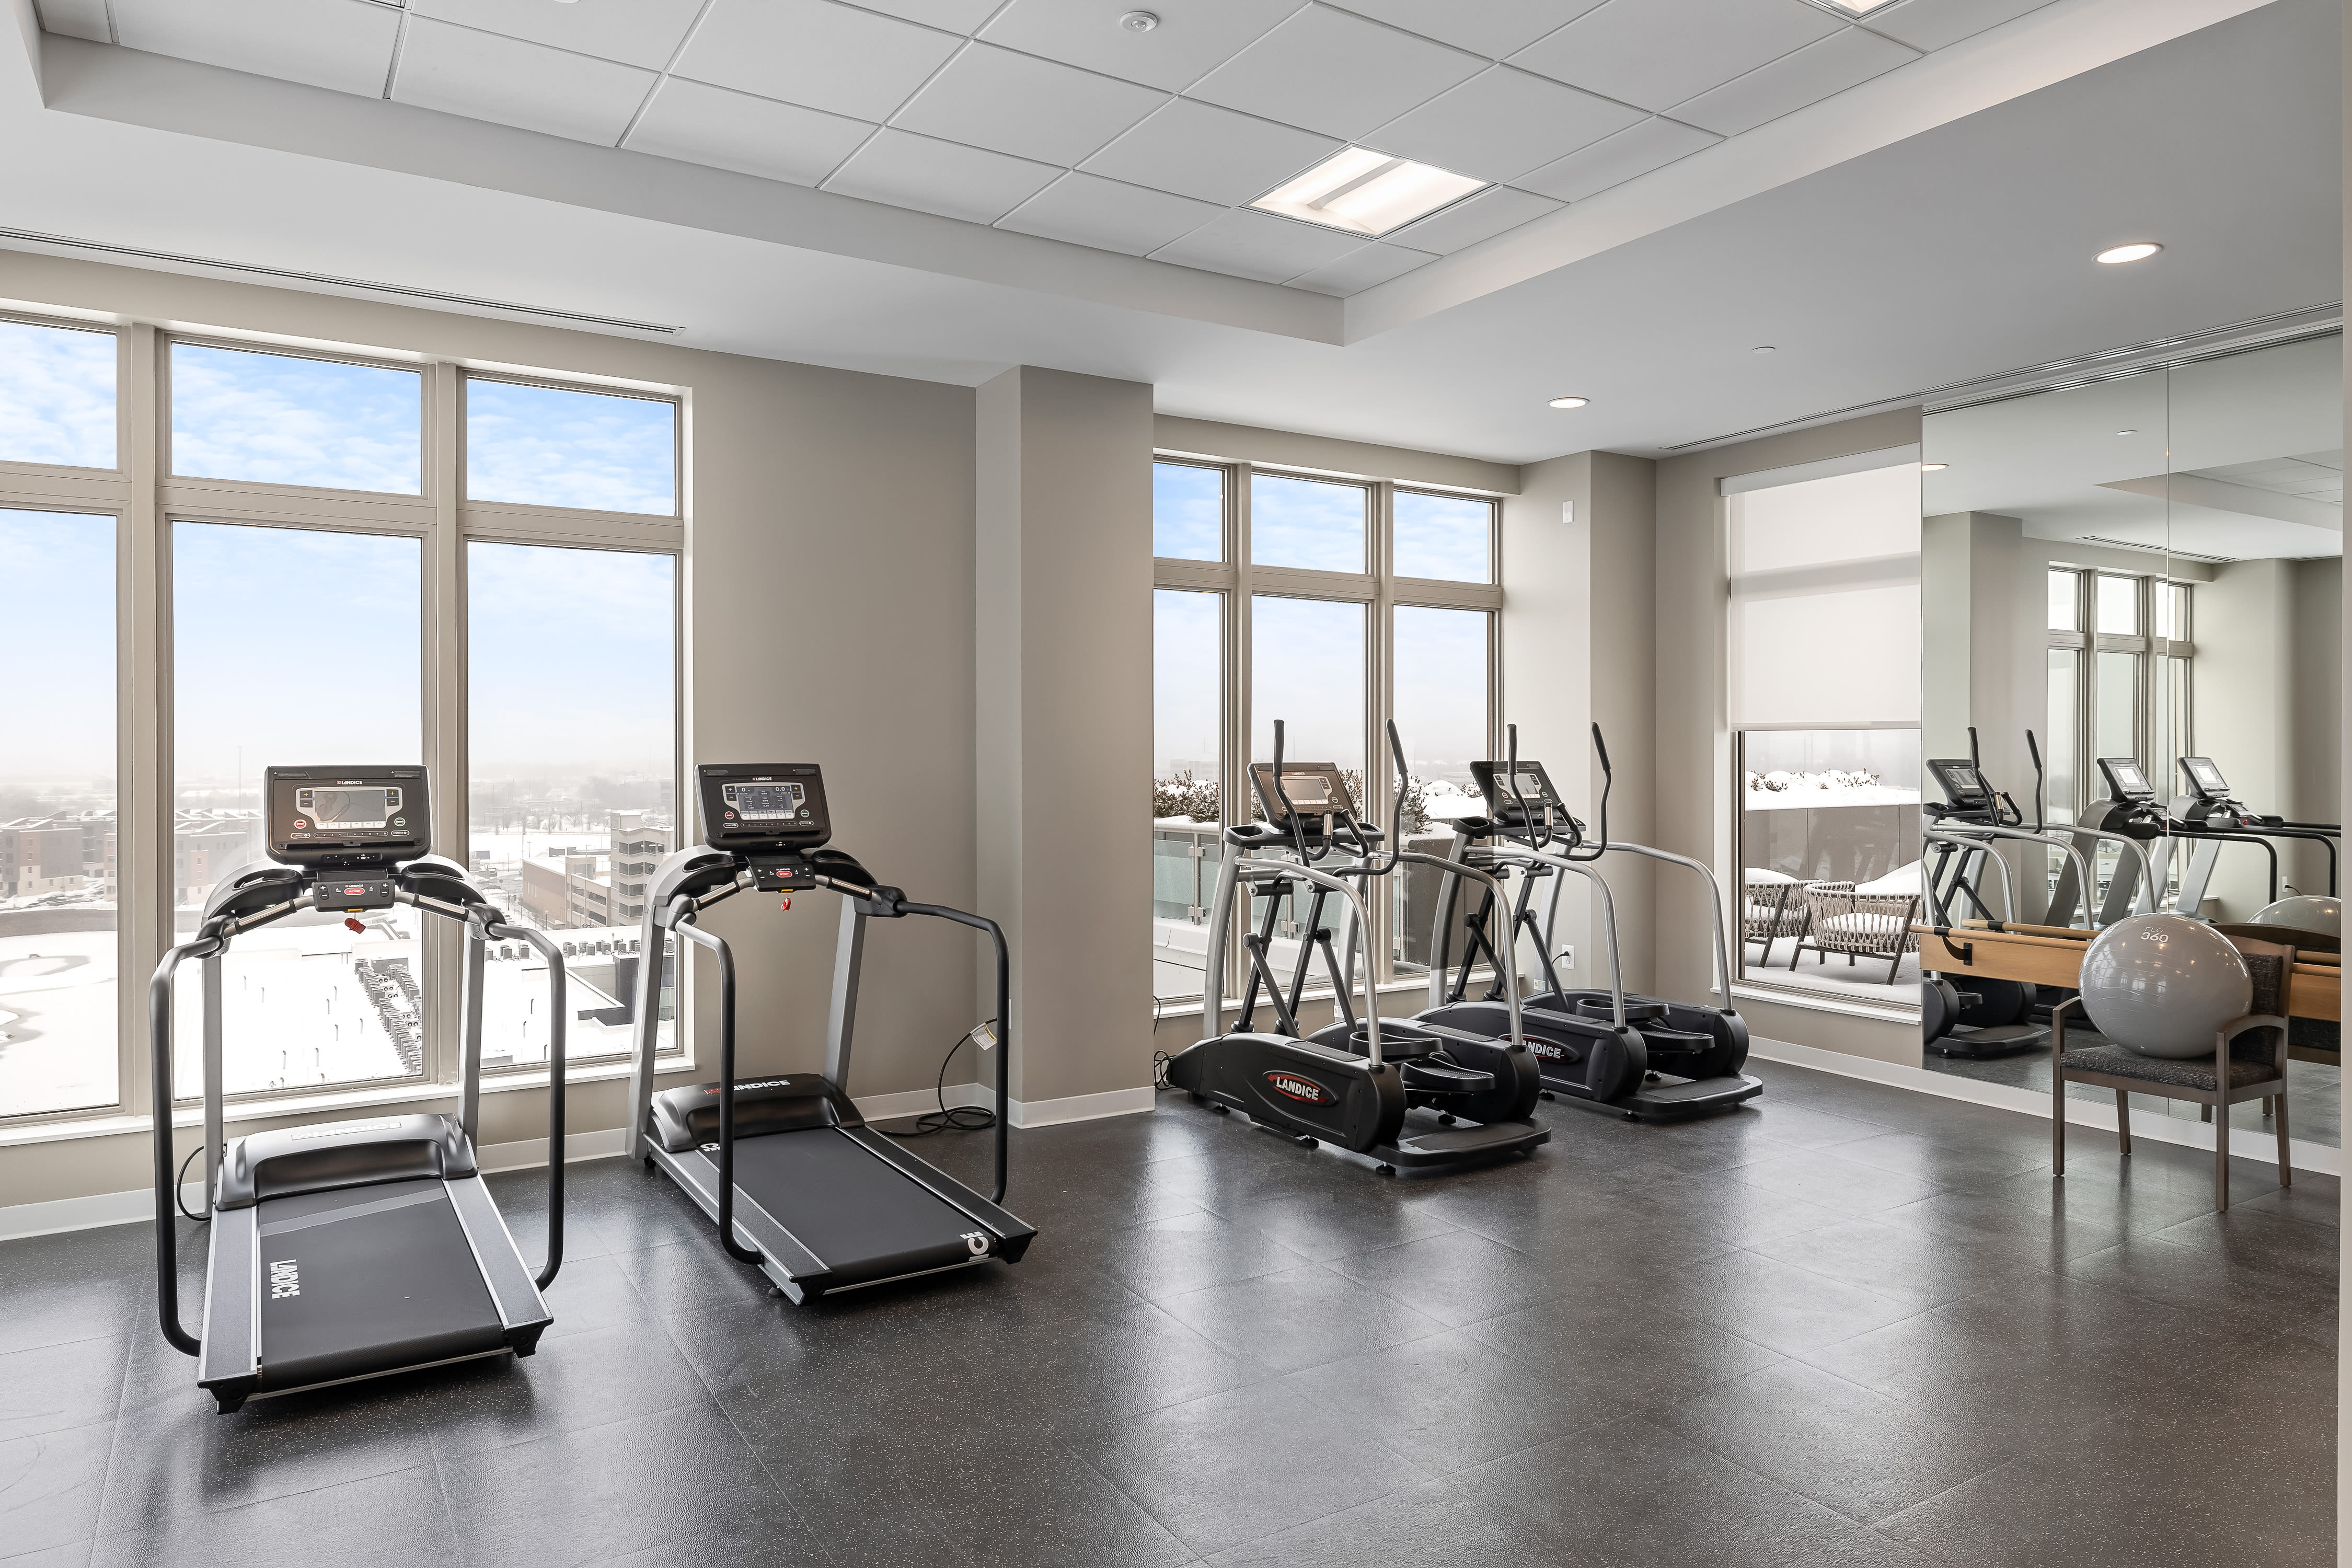 Fitness center at Anthology of King of Prussia – Now Open in King of Prussia, Pennsylvania